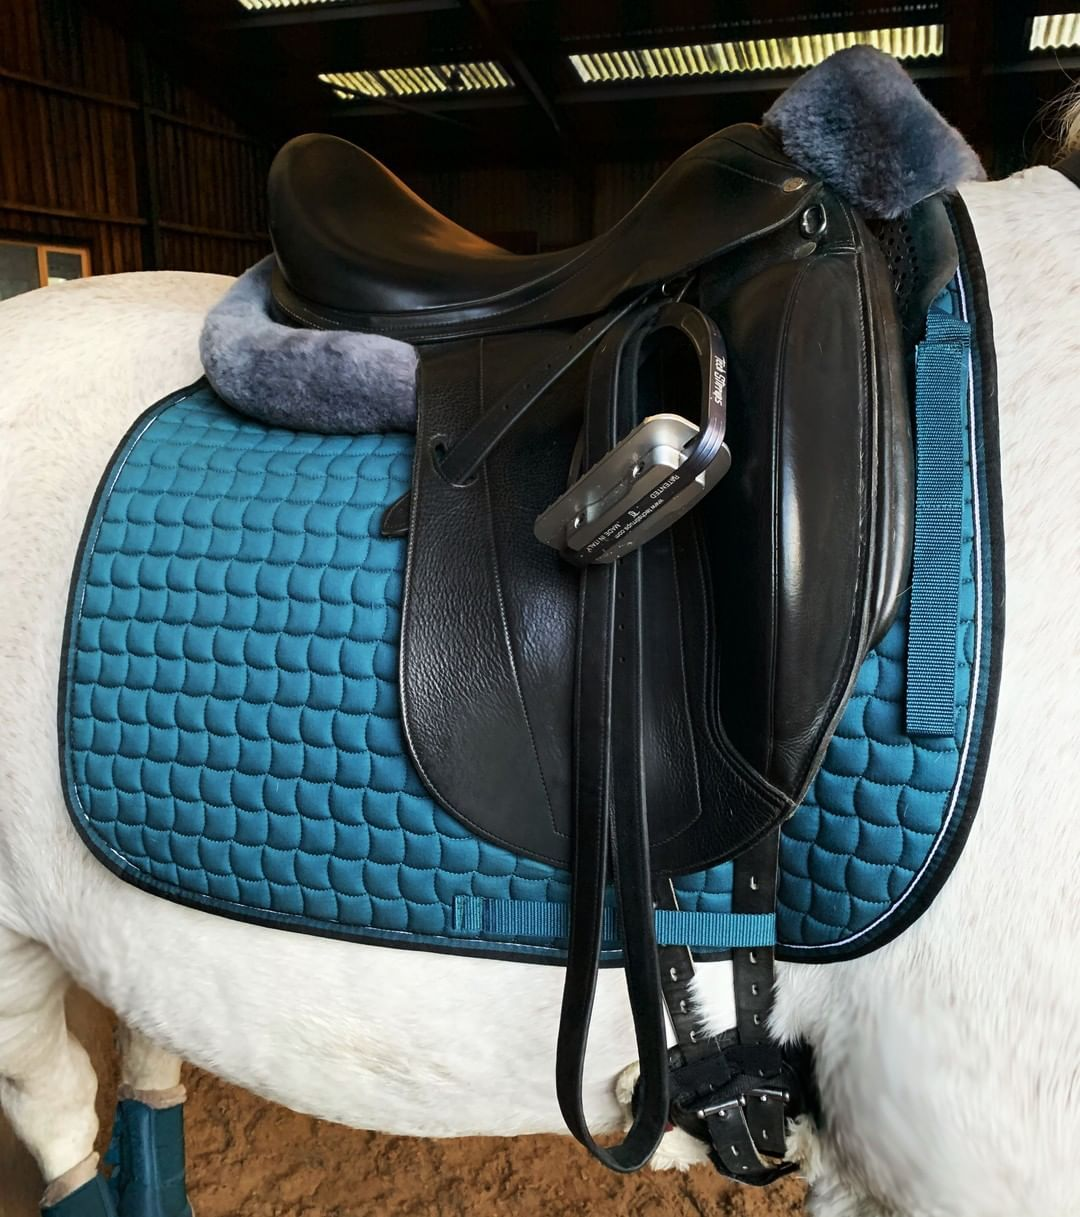 Dressageperformance Posted To Instagram Eskadron Tealblue Saddle Selleria Equipe Official Stirrups Horse Riding Outfit Dressage Dressage Horses